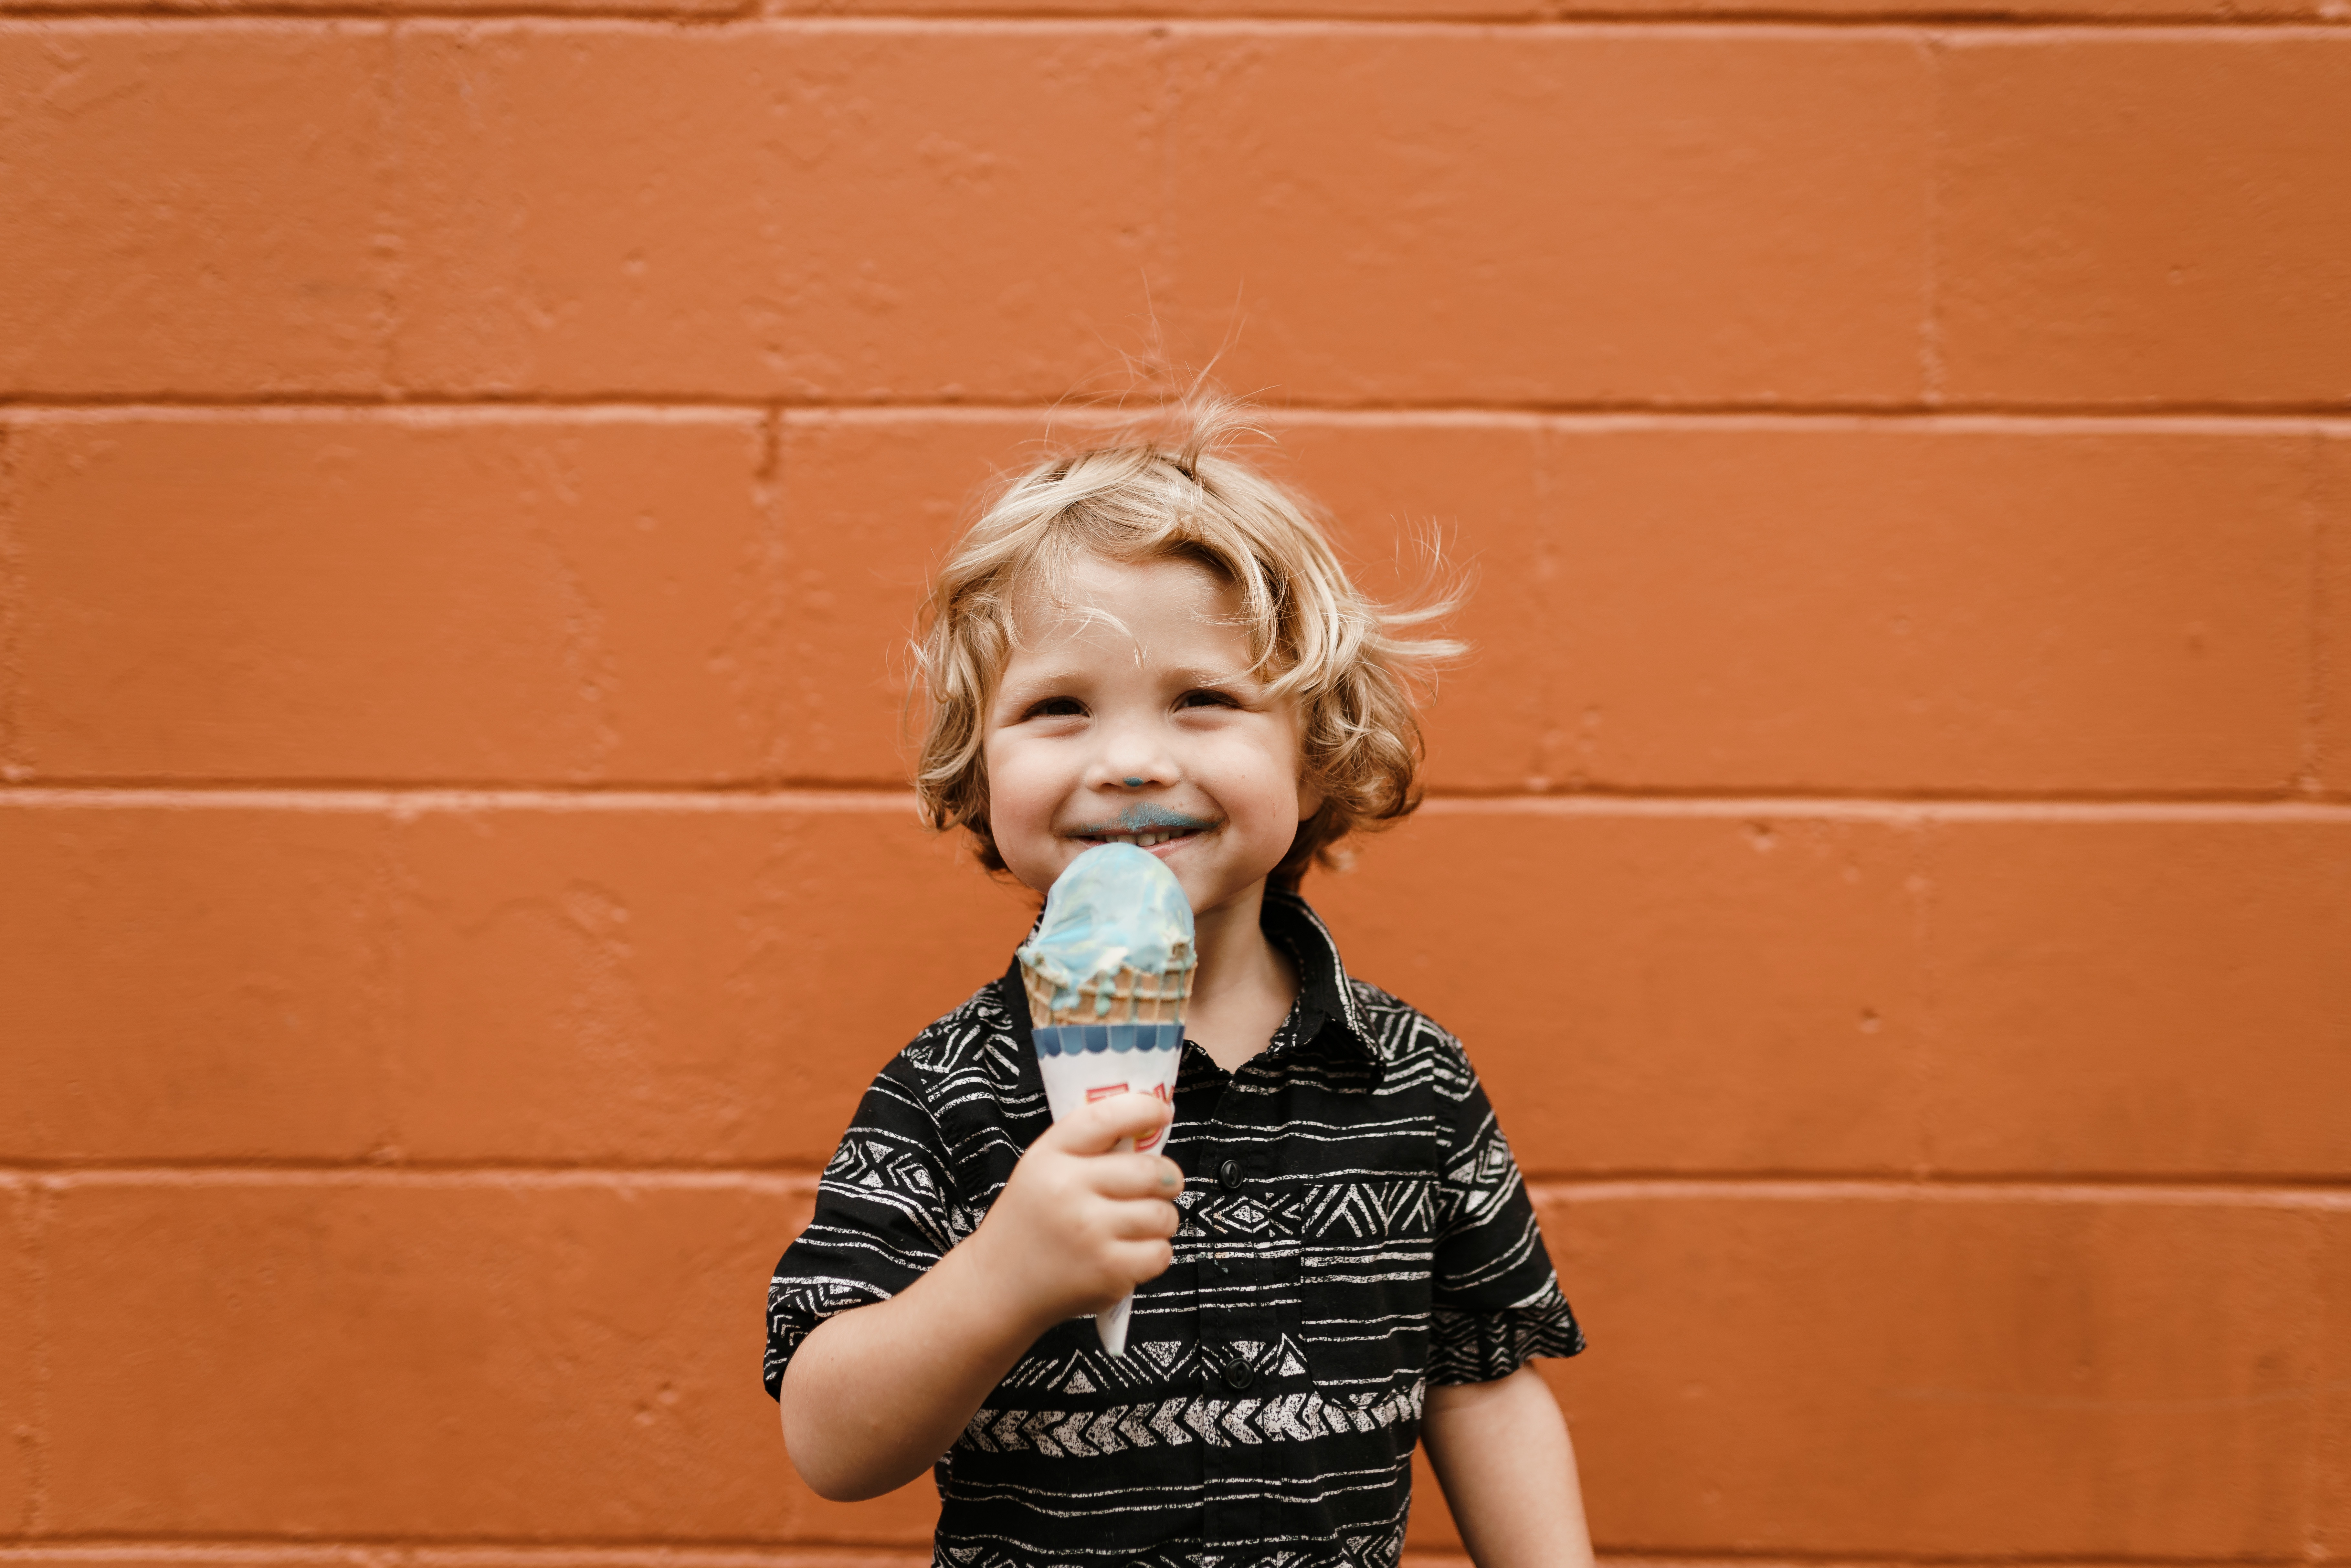 Smiling little boy eating ice cream.jpg